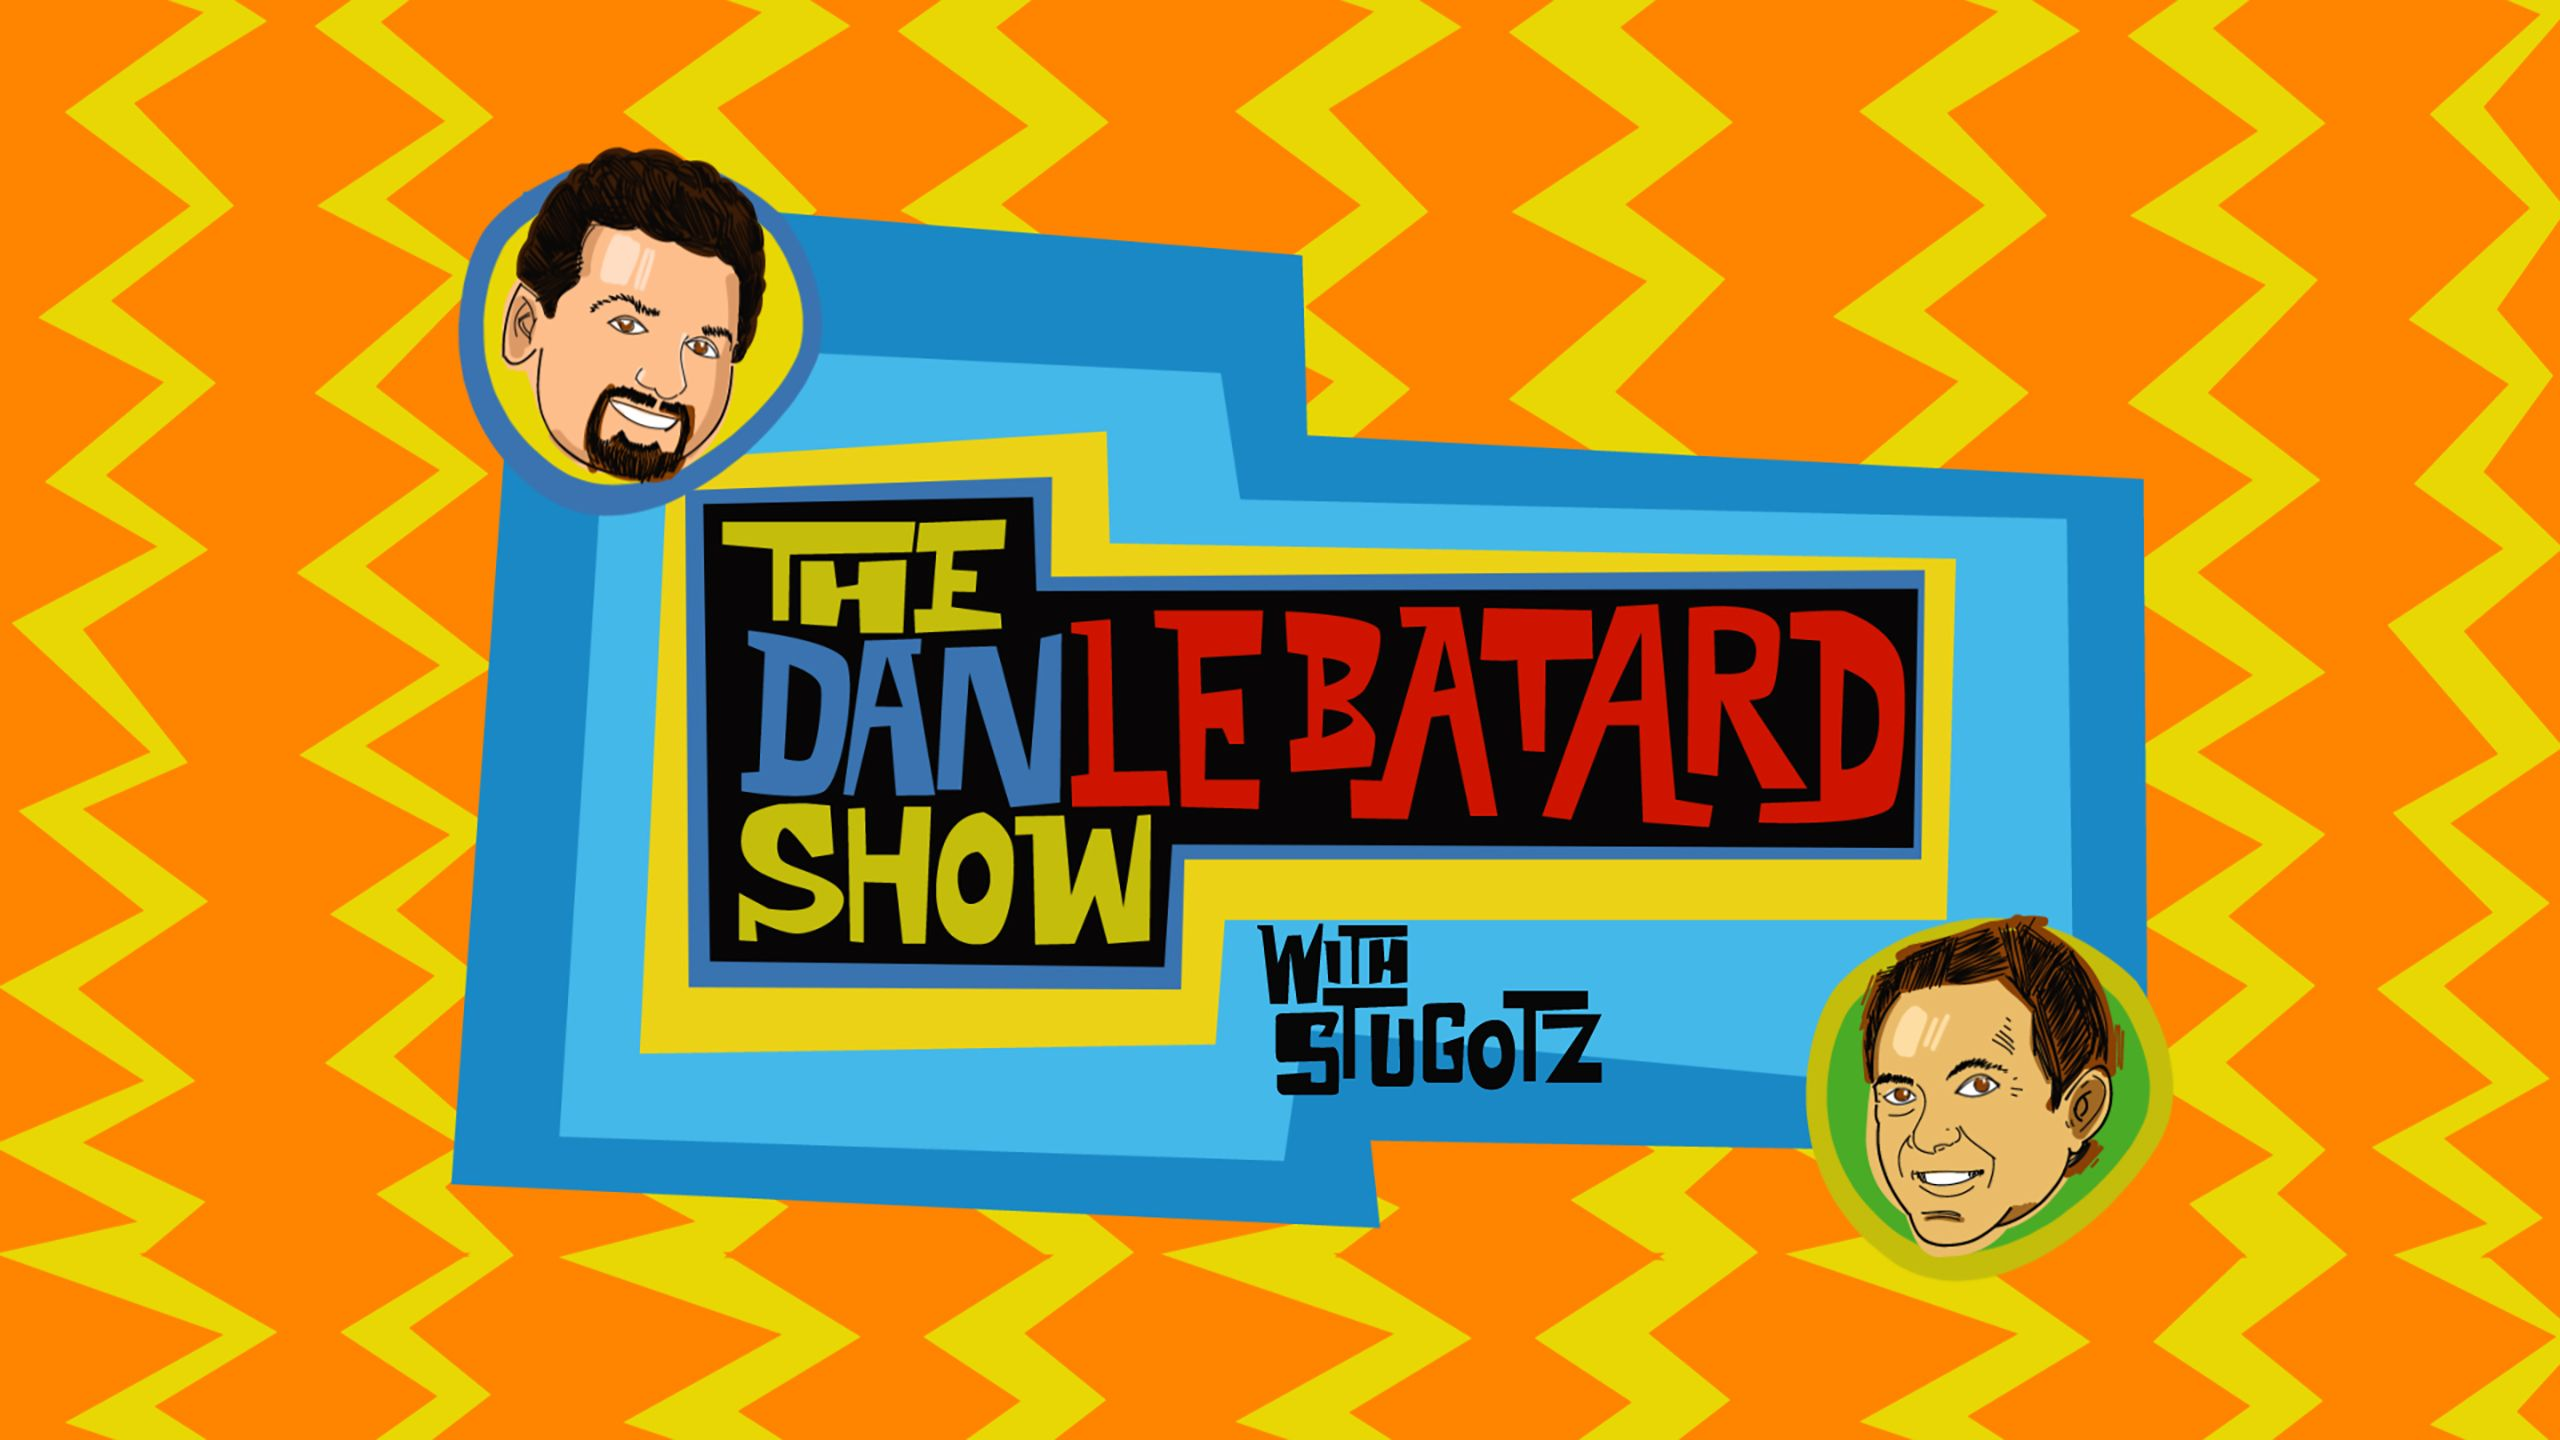 Wed, 2/21 - The Dan Le Batard Show with Stugotz Presented by Progressive